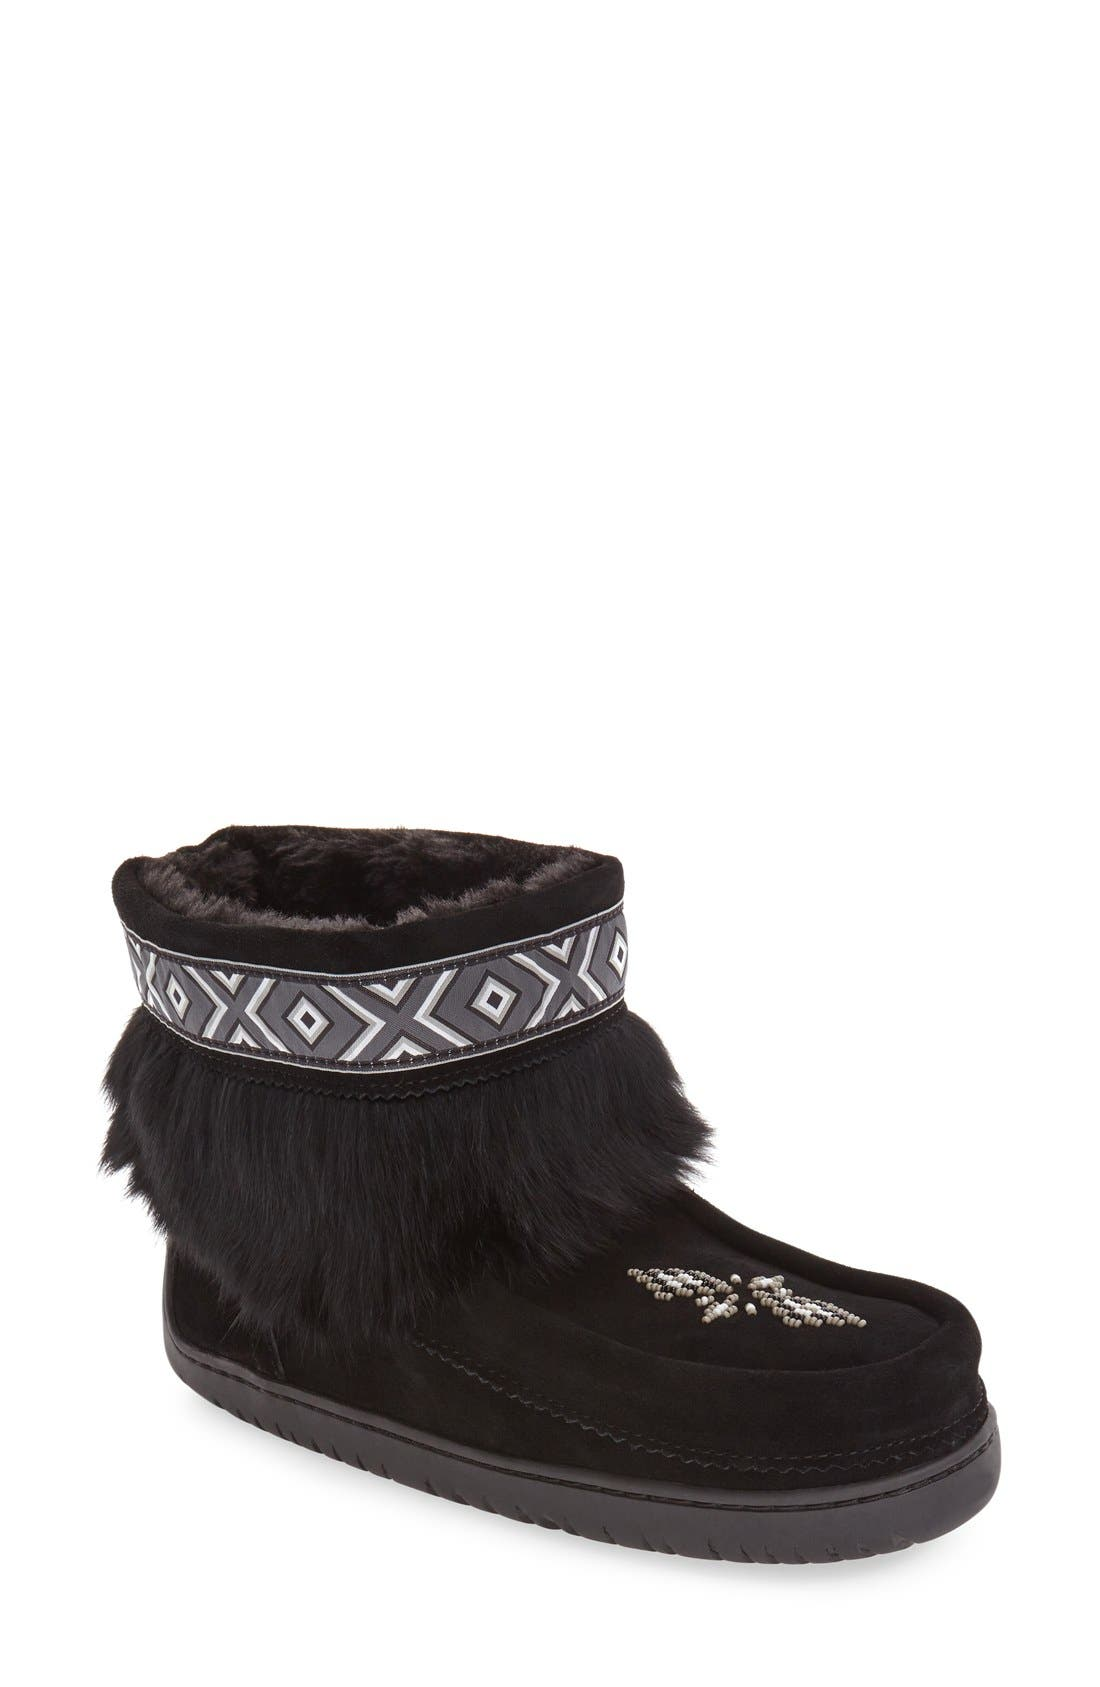 'Keewatin' Genuine Shearling and Rabbit Fur Boot,                             Main thumbnail 1, color,                             Black Rabbit Fur Suede